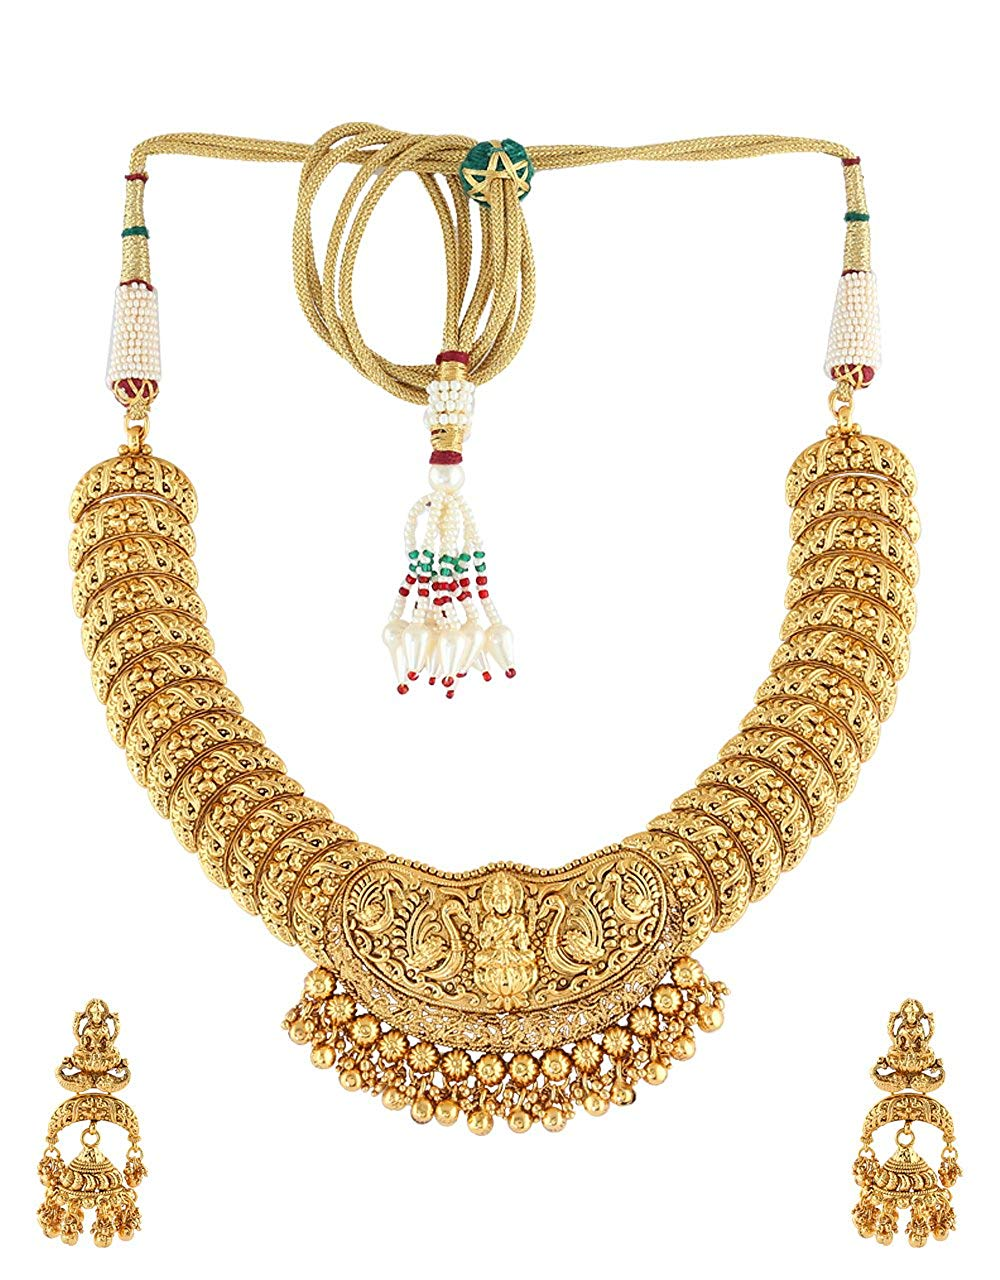 Anuradha Art Golden Finish Styled With Temple Look Designer Traditional Necklace Set For Women/Girls